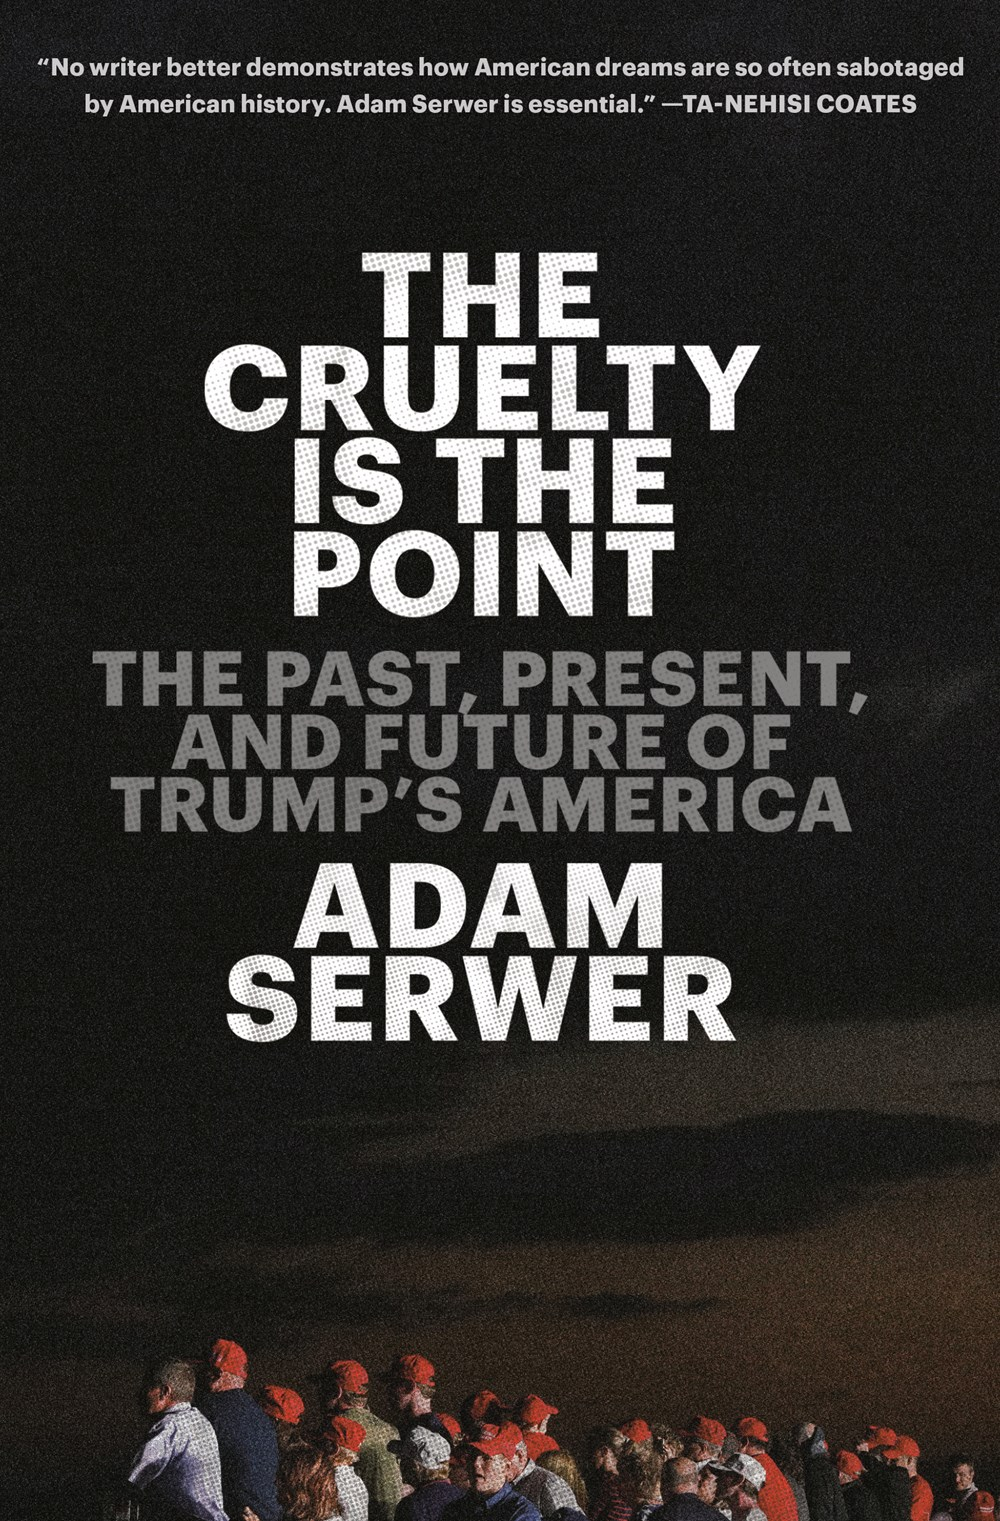 The Cruelty Is the Point by Adam Serwer